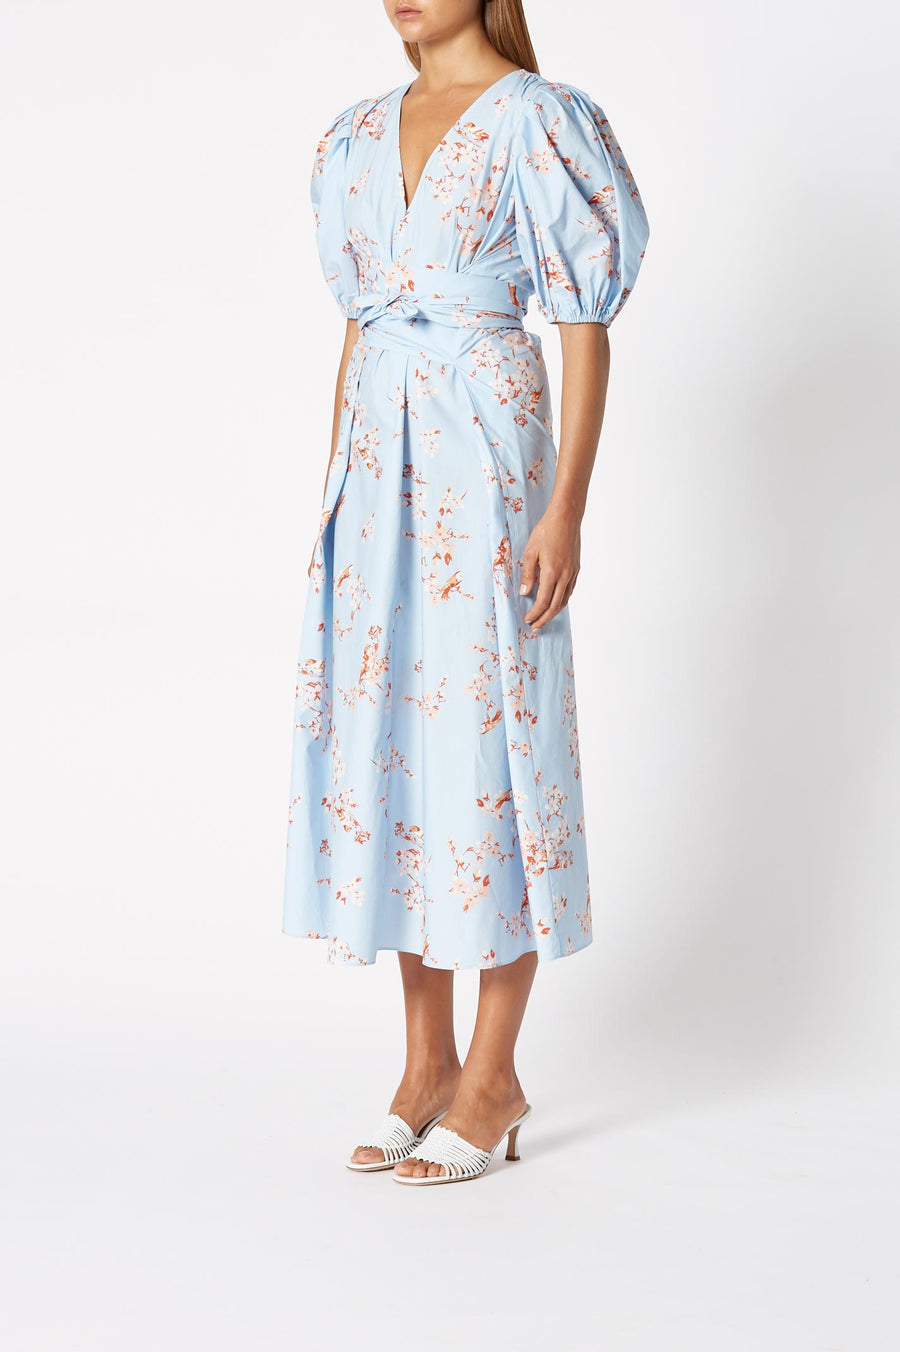 Printed Cotton Dress Sky, midi length, v- neckline, blouson sleeve with elasticated cuff, detachable belt